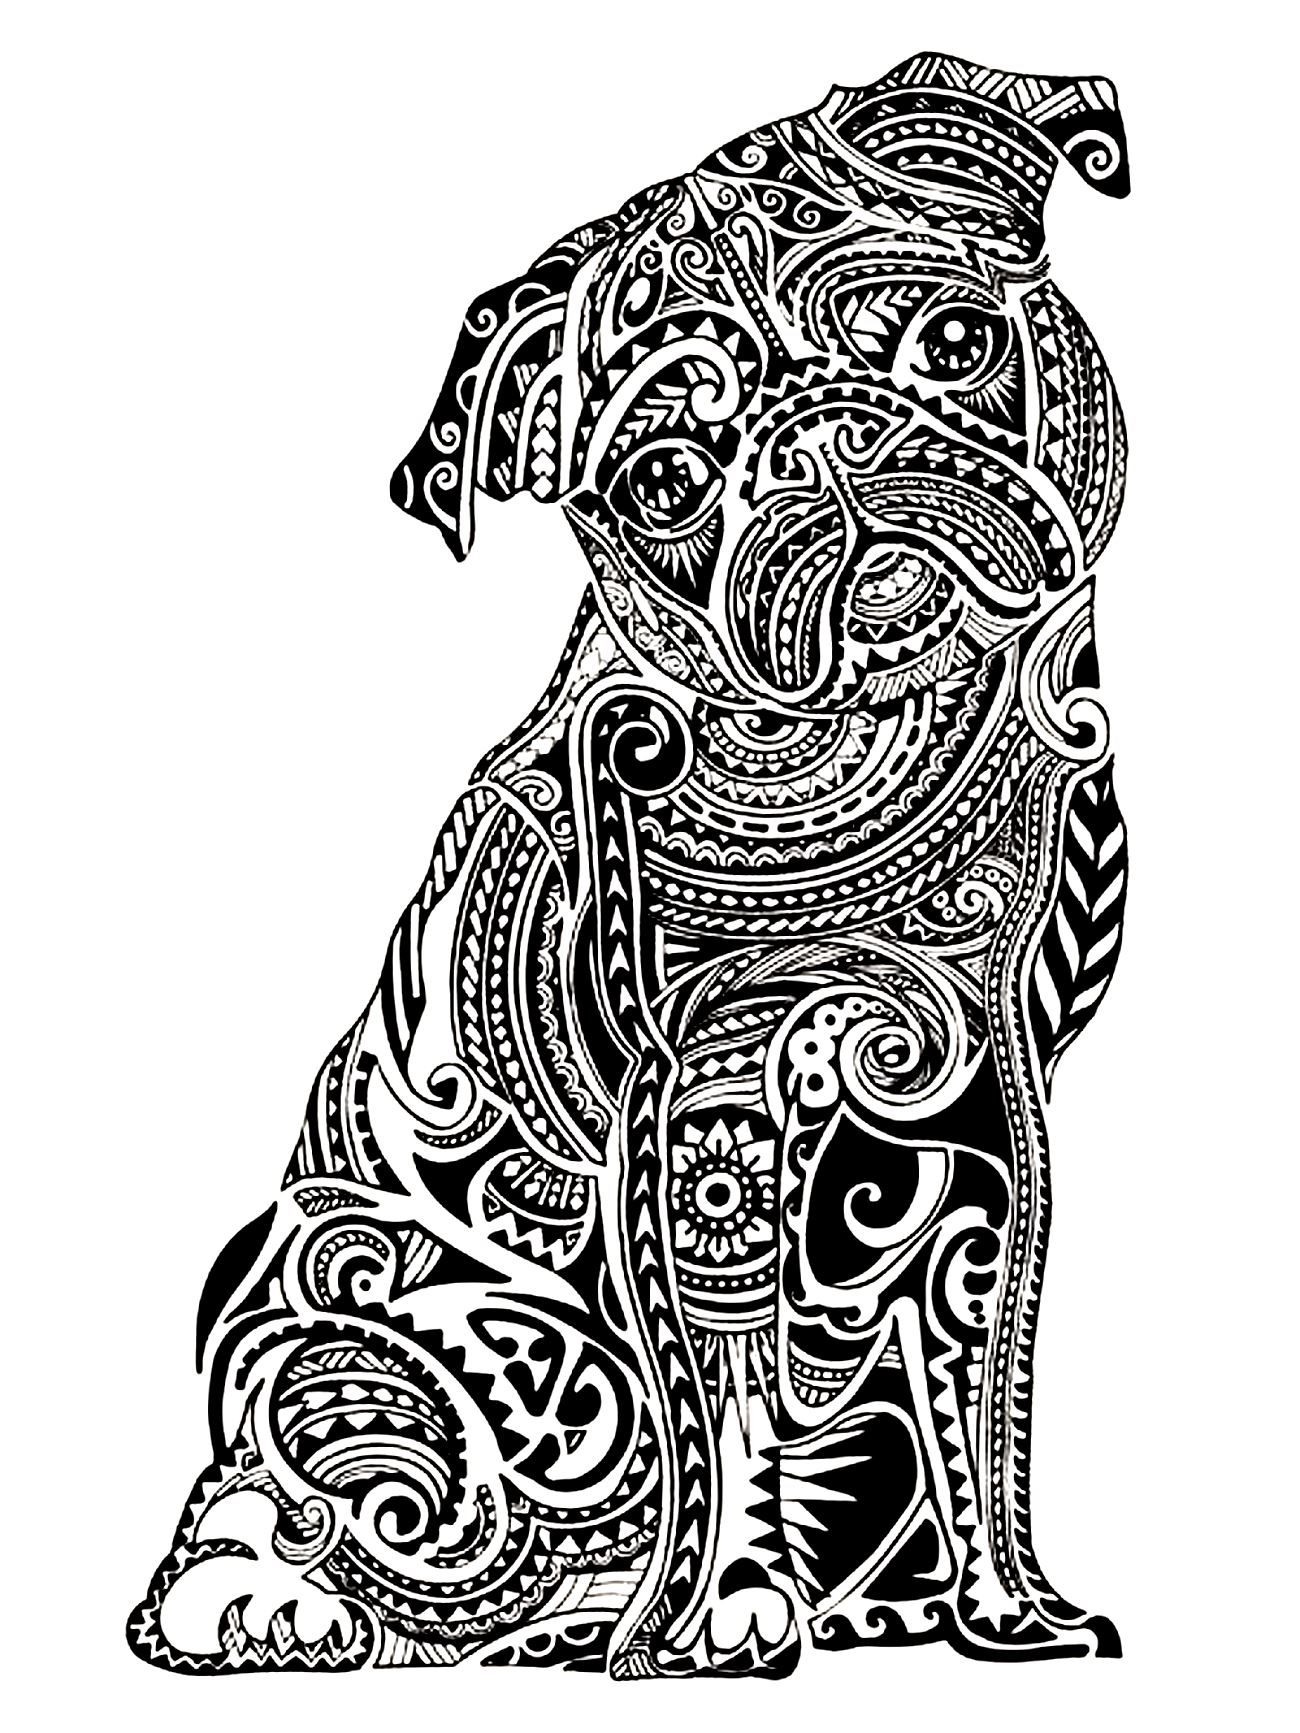 Coloring pictures for adults - Discover Our Free Adult Coloring Pages Various Themes Artists Difficulty Levels The Perfect Anti Stress Activity For You